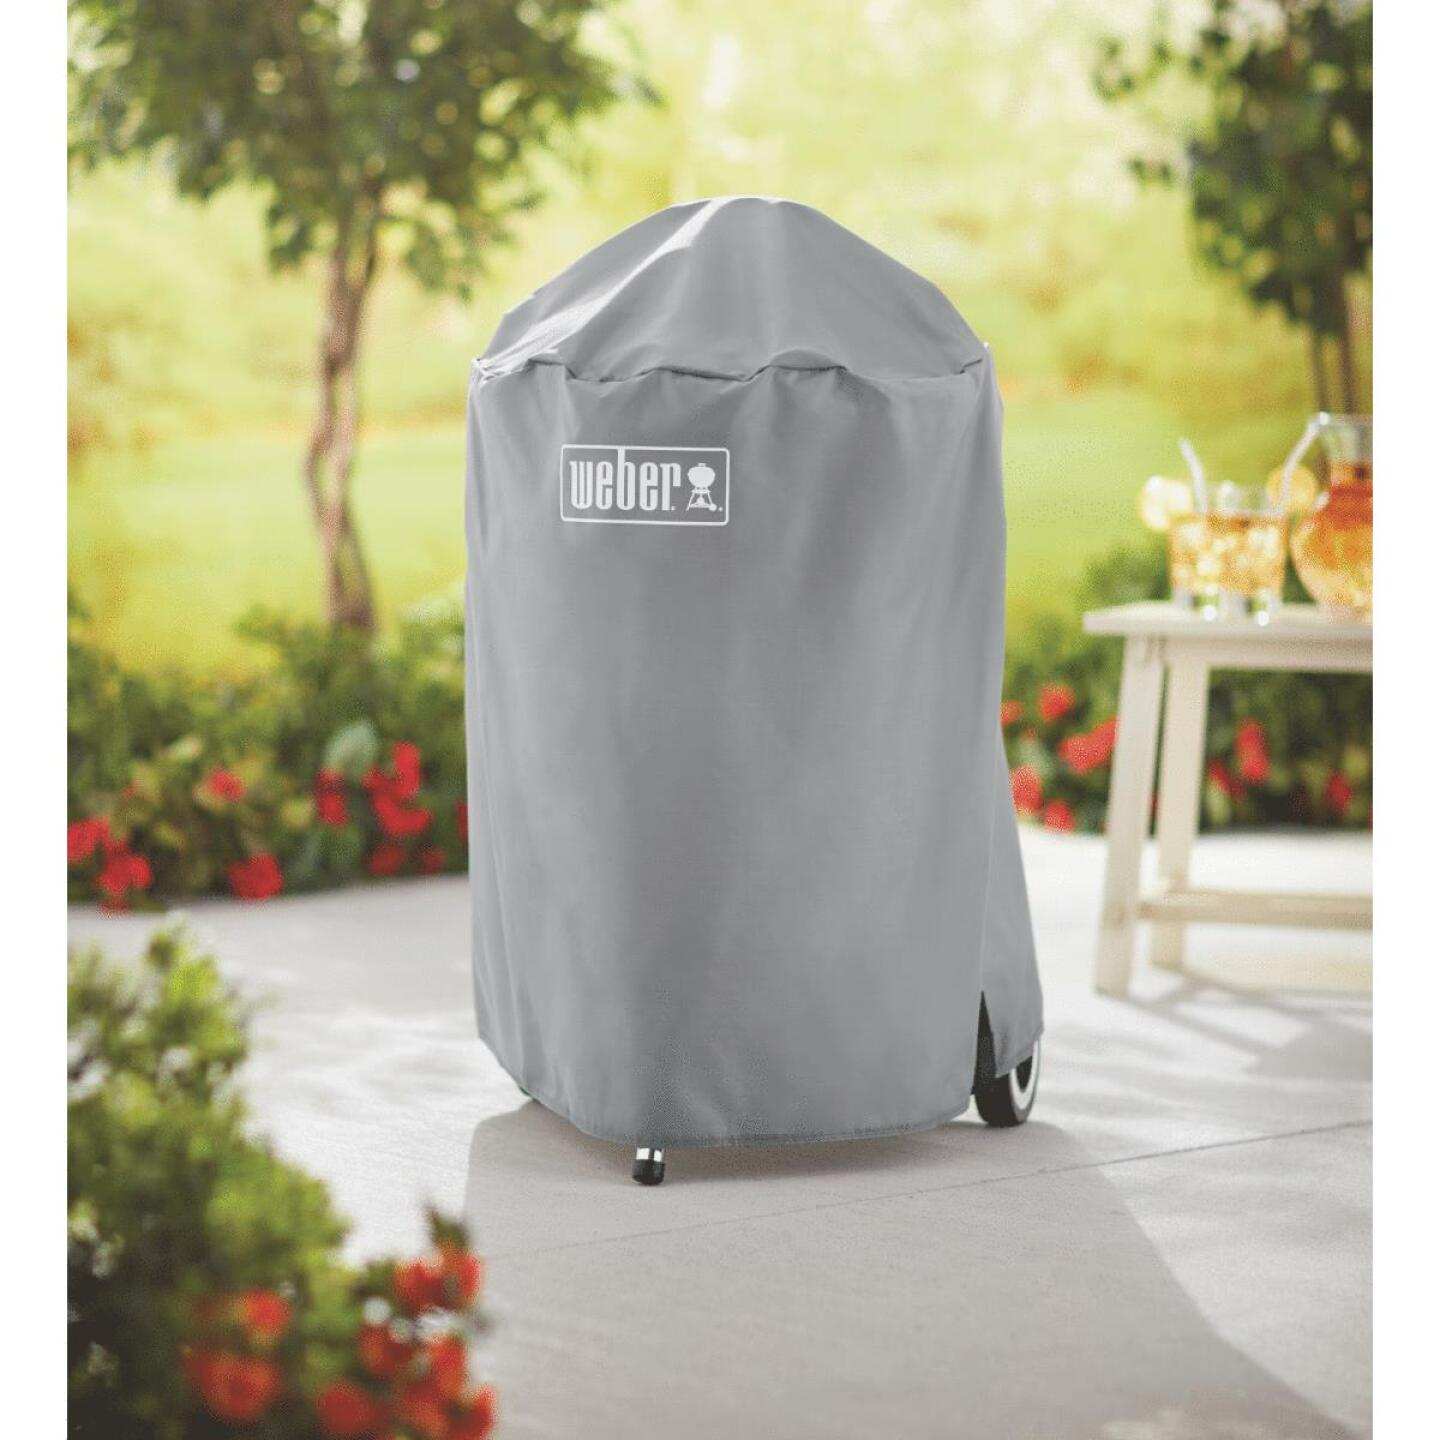 Weber 18 In. Gray Vinyl Kettle Grill Cover Image 2